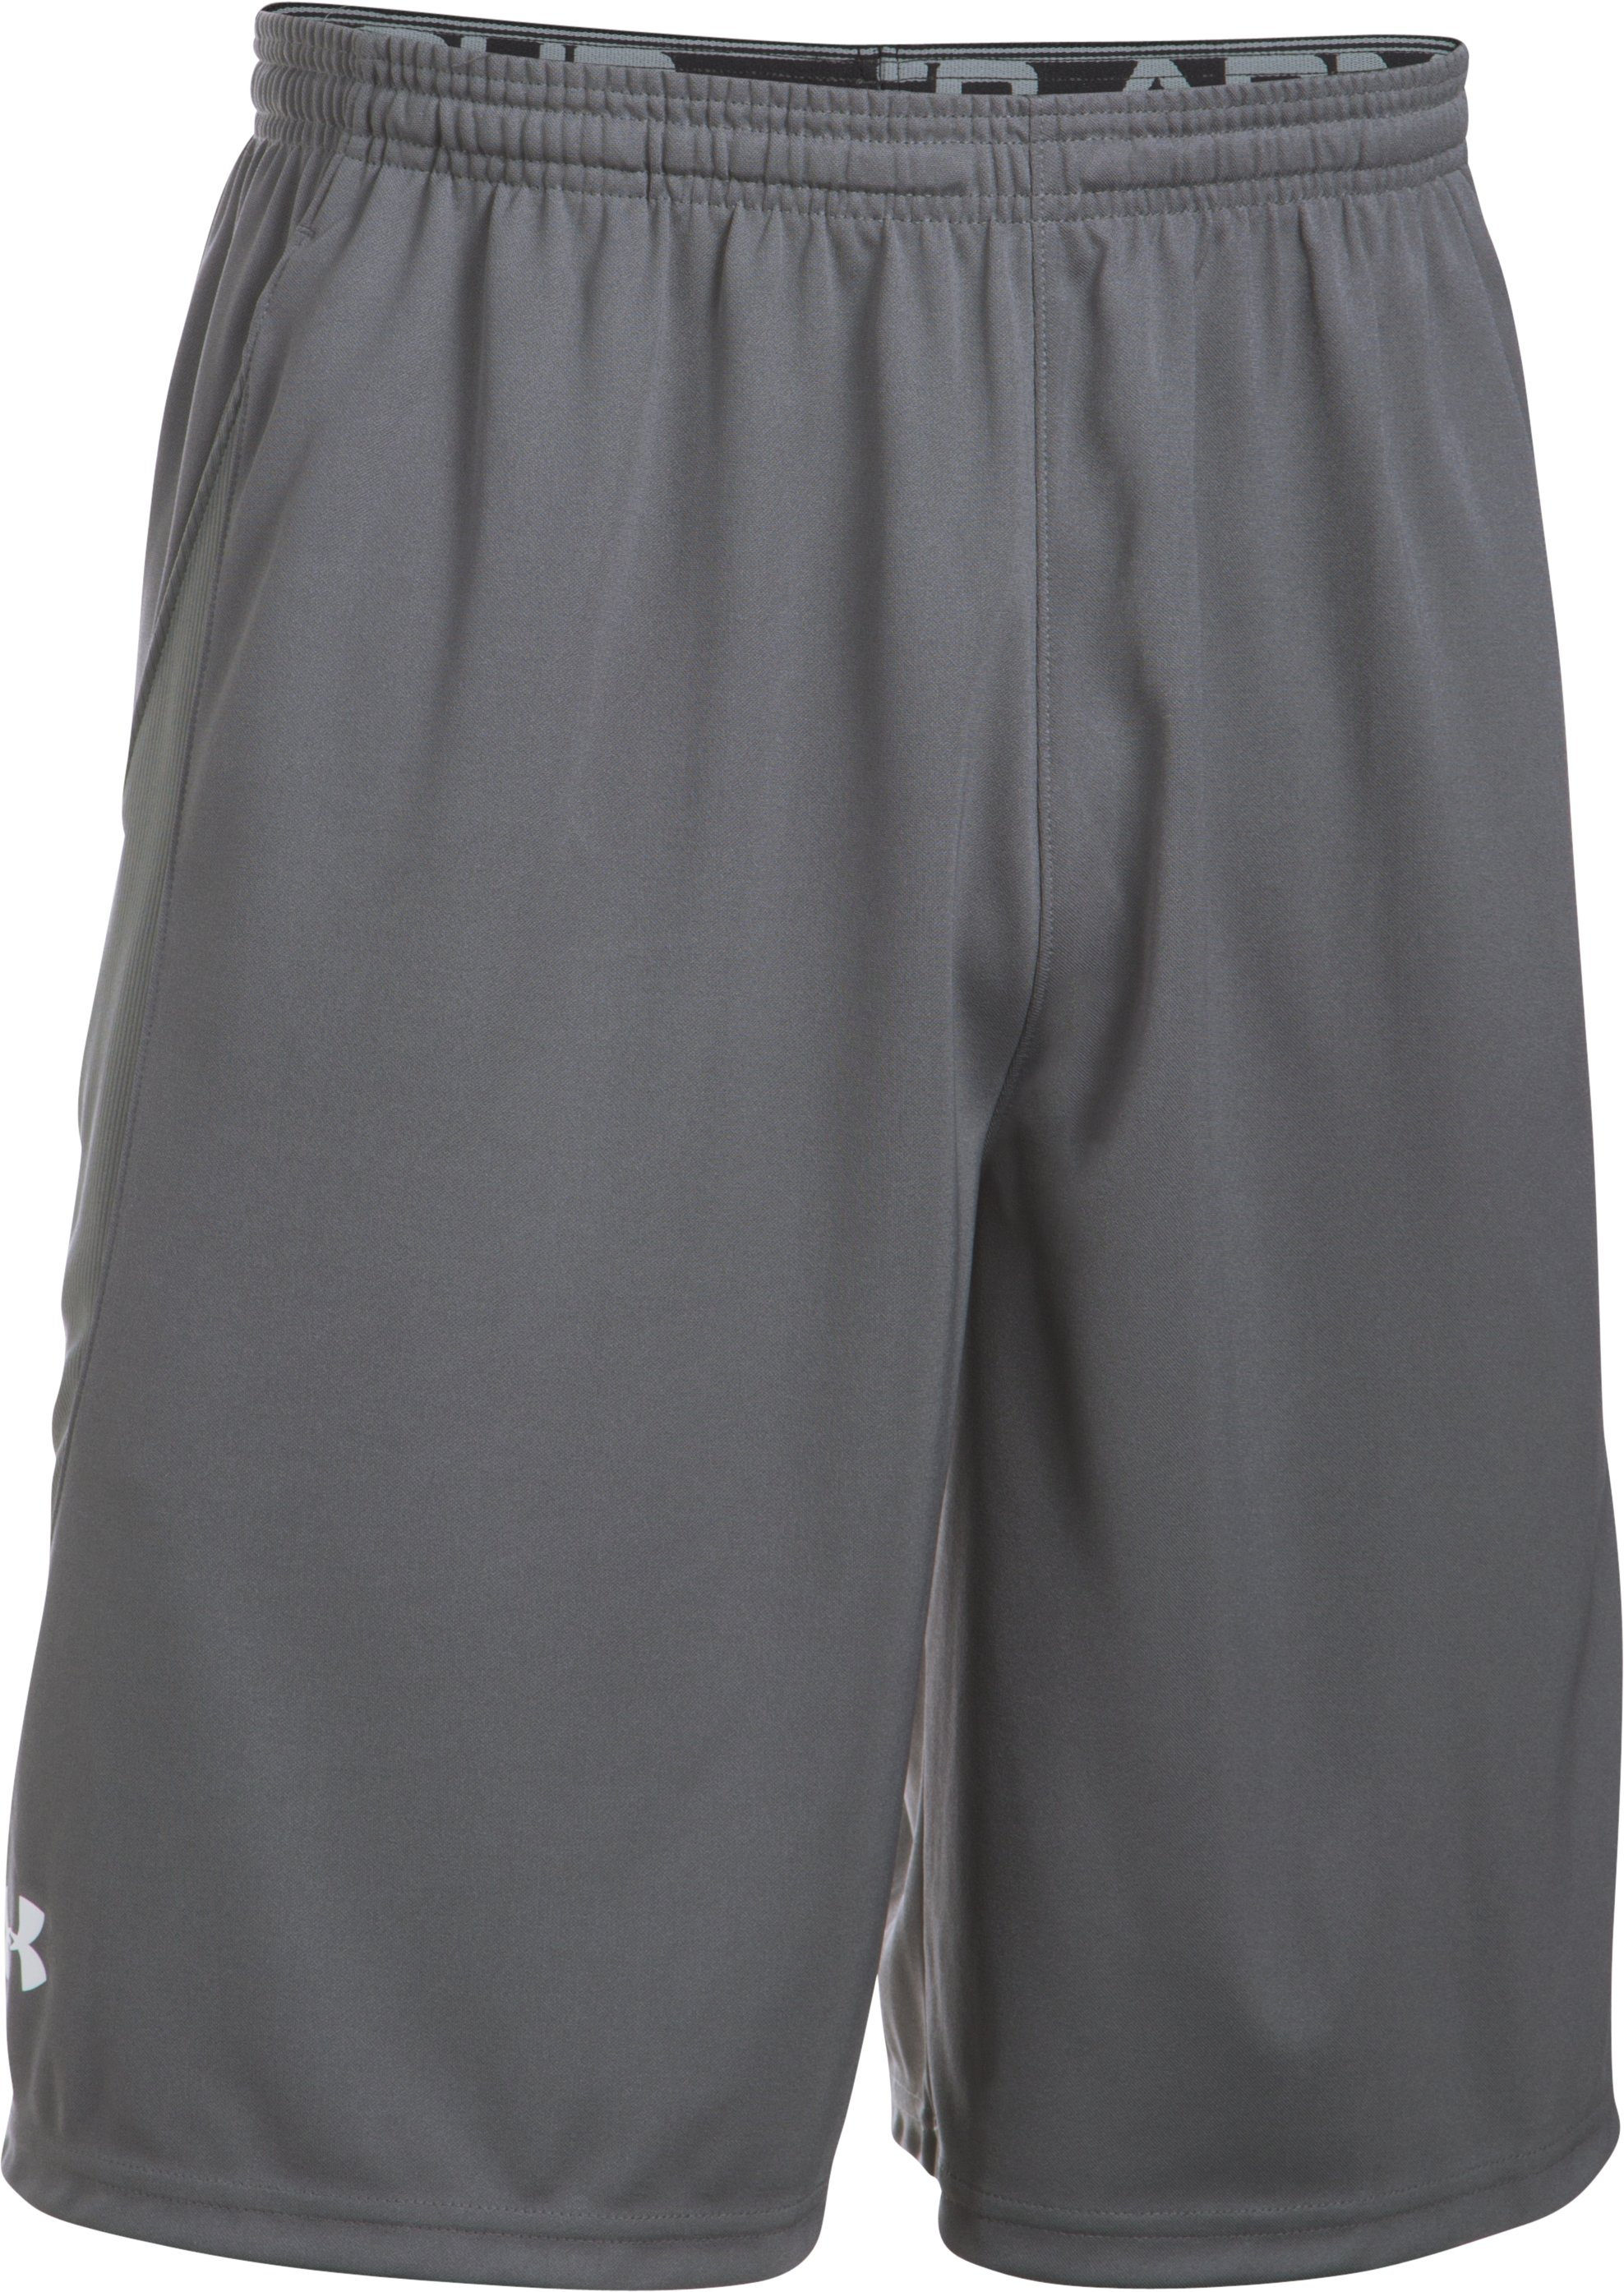 UA Team Coaches Short, Graphite